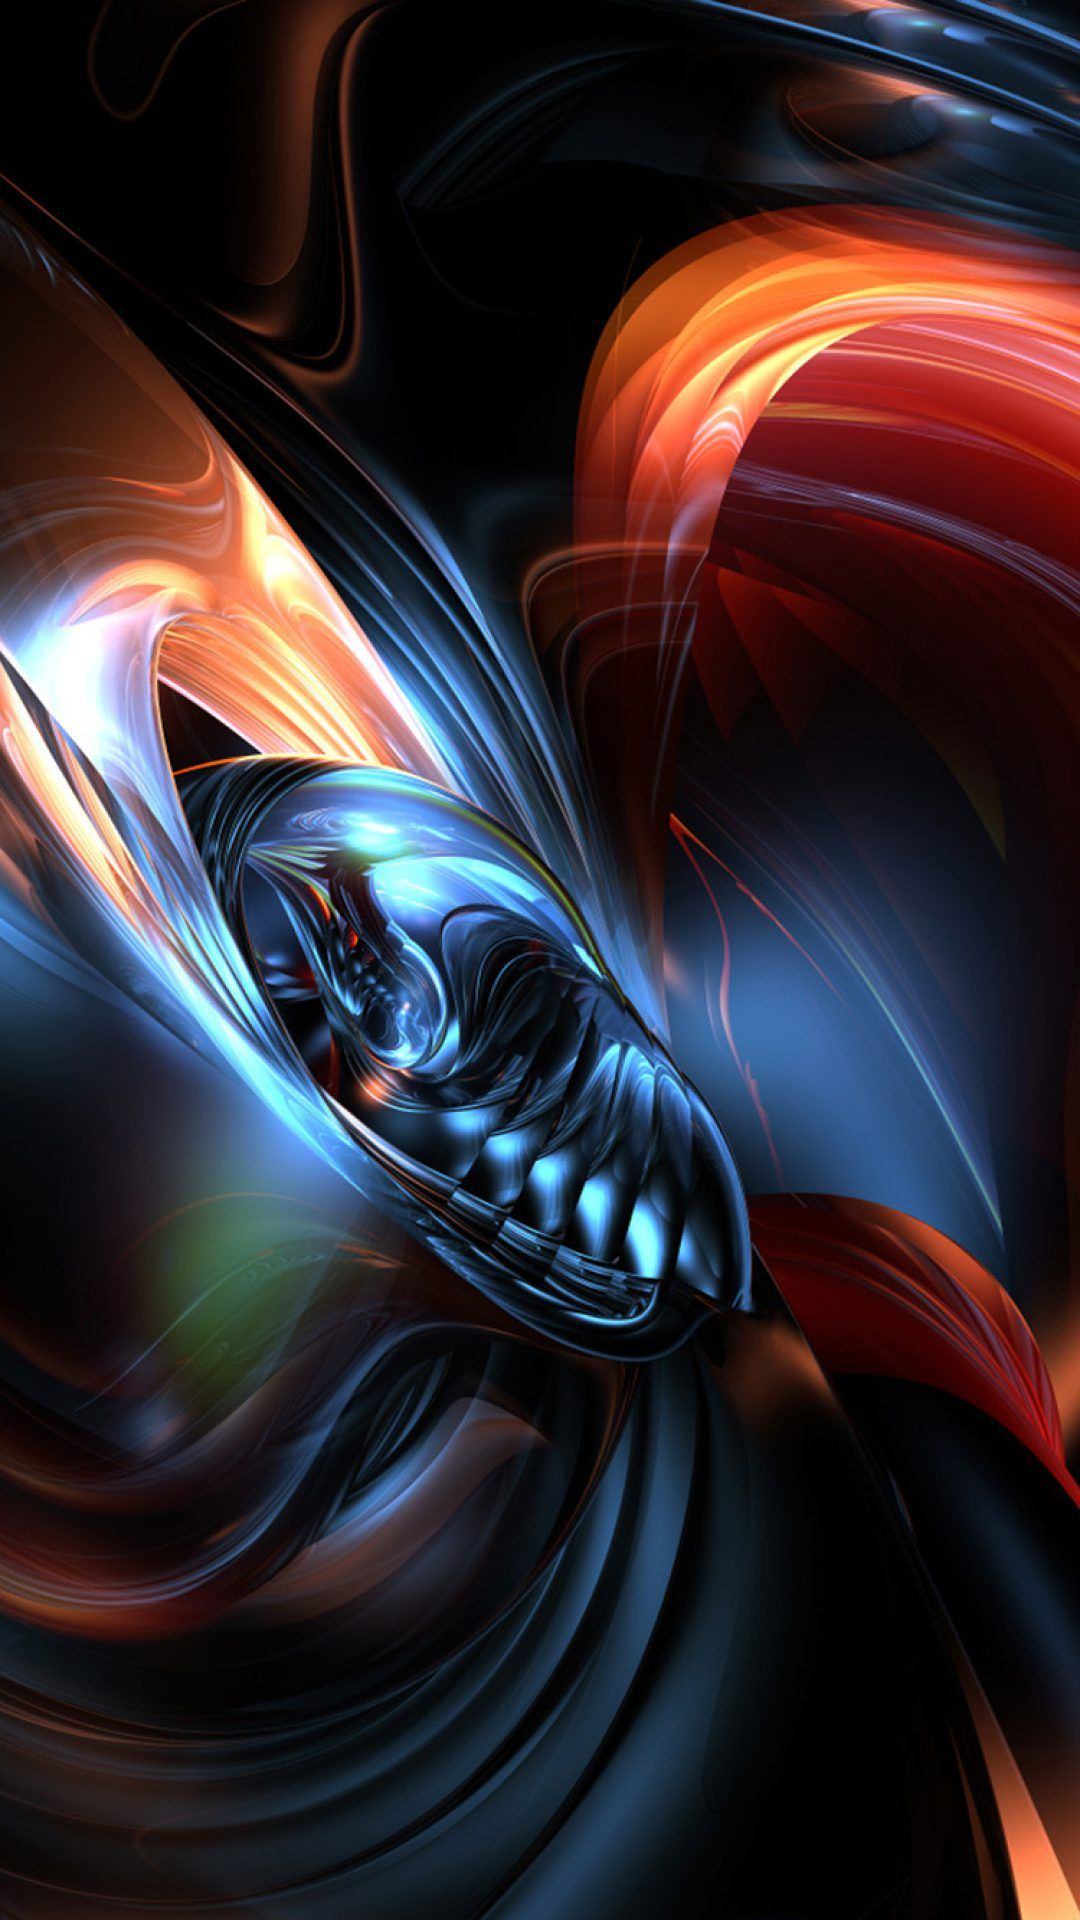 Abstract 3D iPhone X Wallpaper | iPhoneWallpapers | Iphone wallpaper, 3d wallpaper for mobile ...